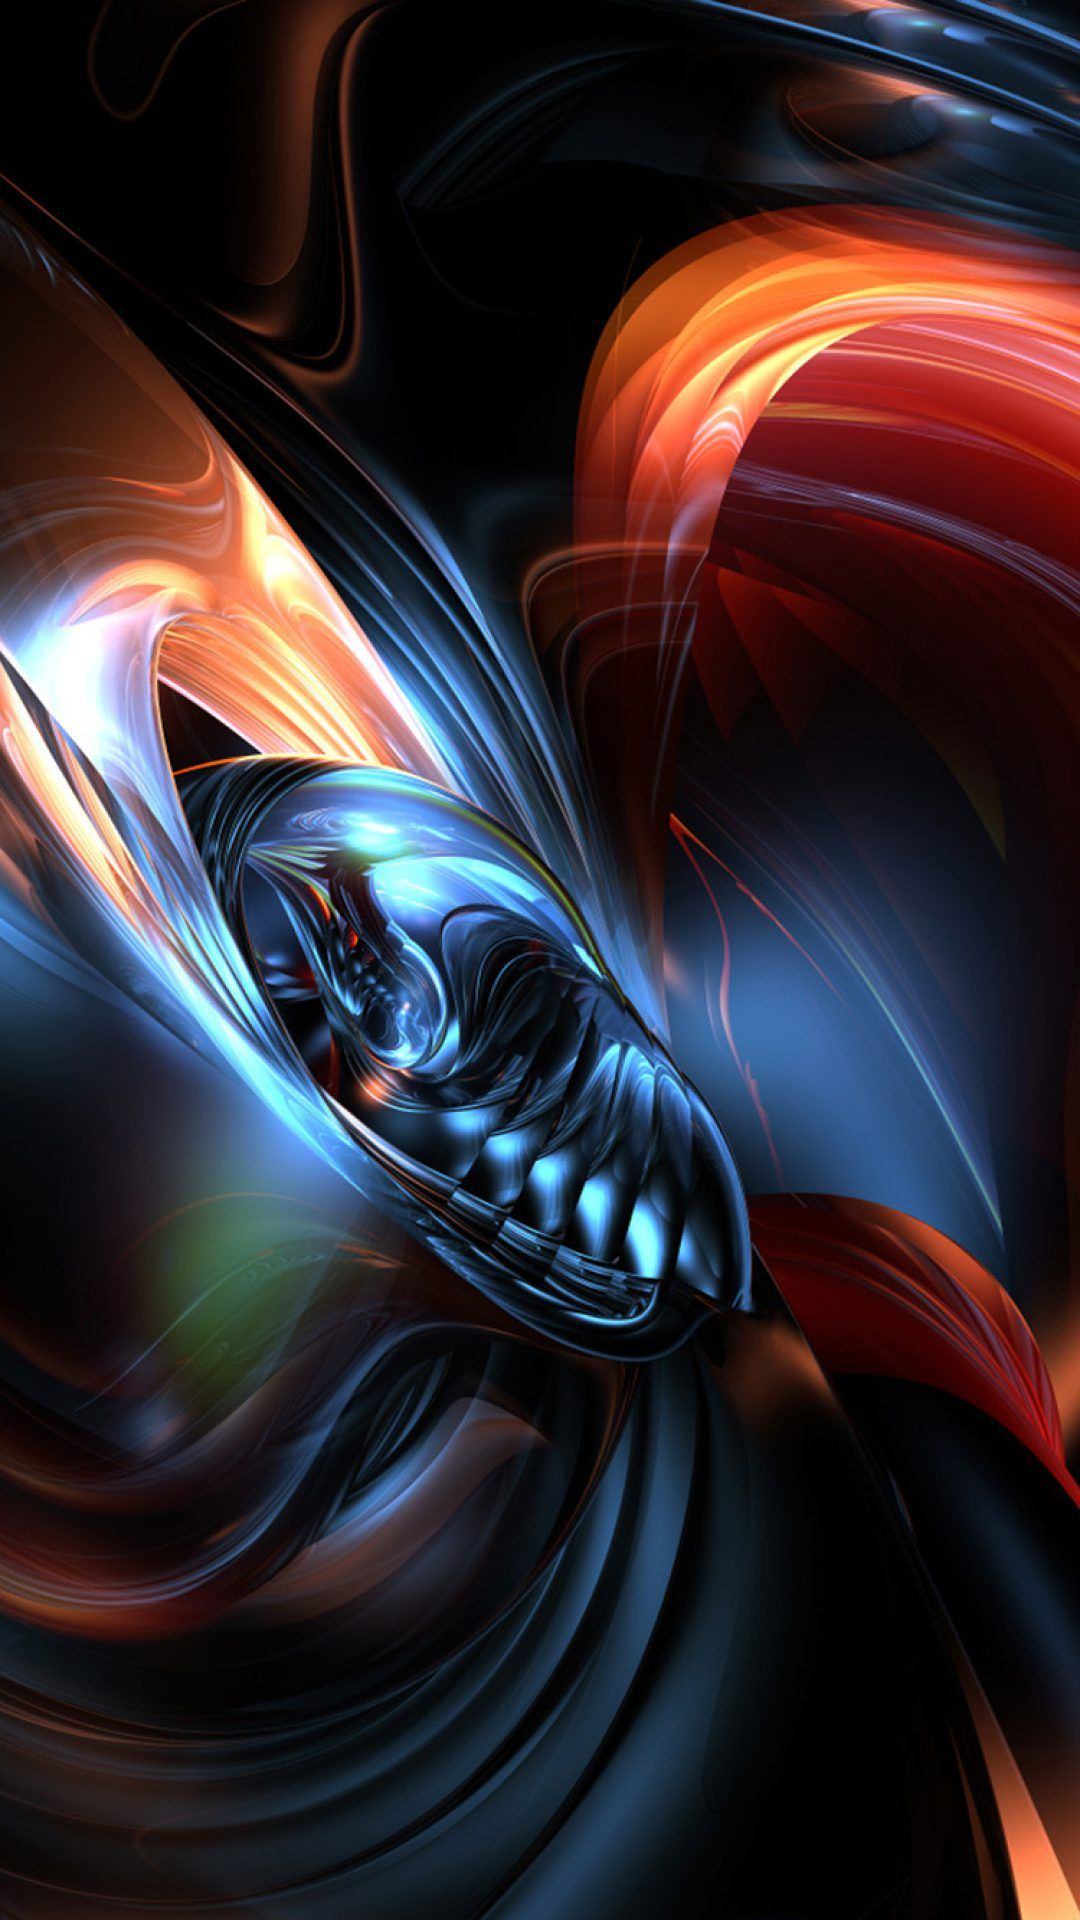 Abstract 3D iPhone X Wallpaper | iPhoneWallpapers | Iphone wallpaper, 3d wallpaper for mobile ...